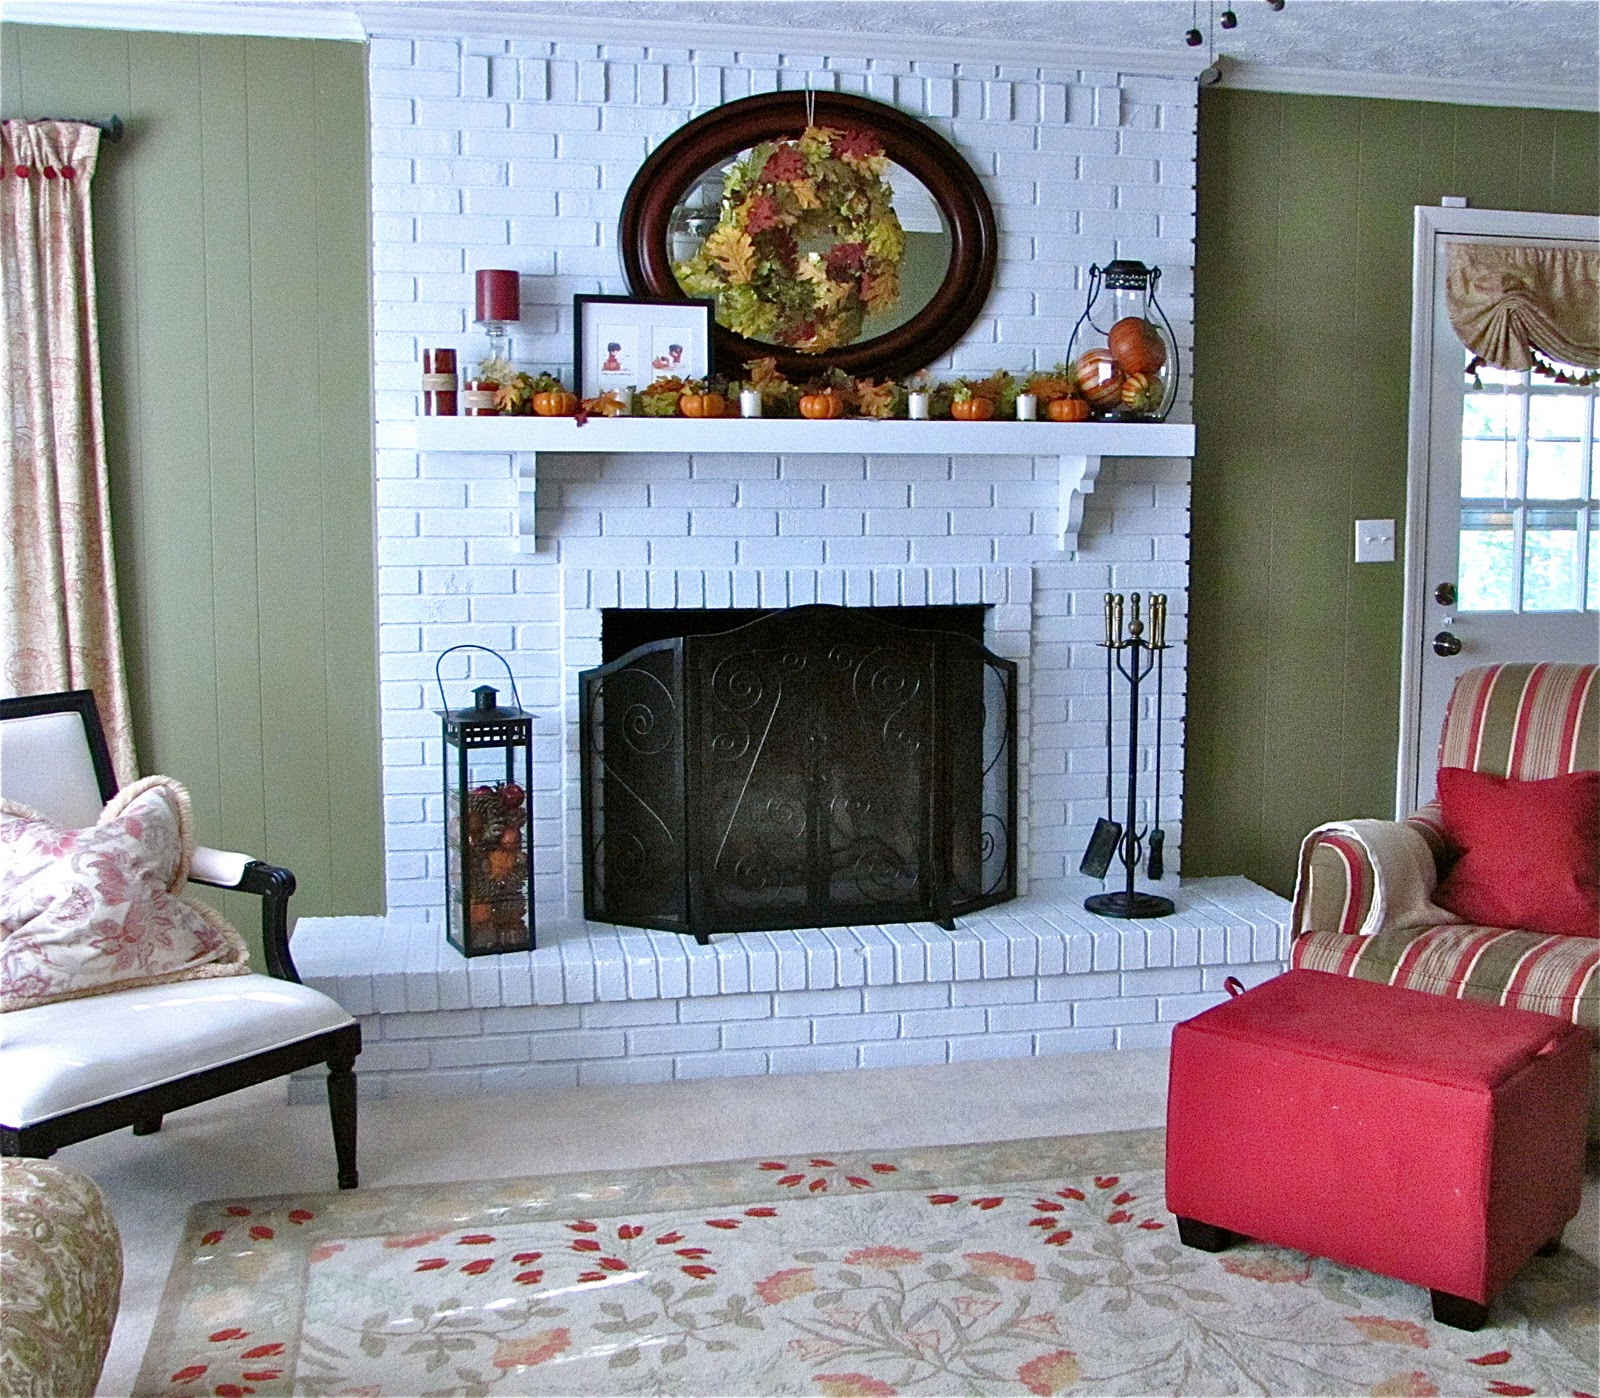 Brick fireplace makeover pictures fireplace design ideas - Red brick fireplace makeover ideas ...